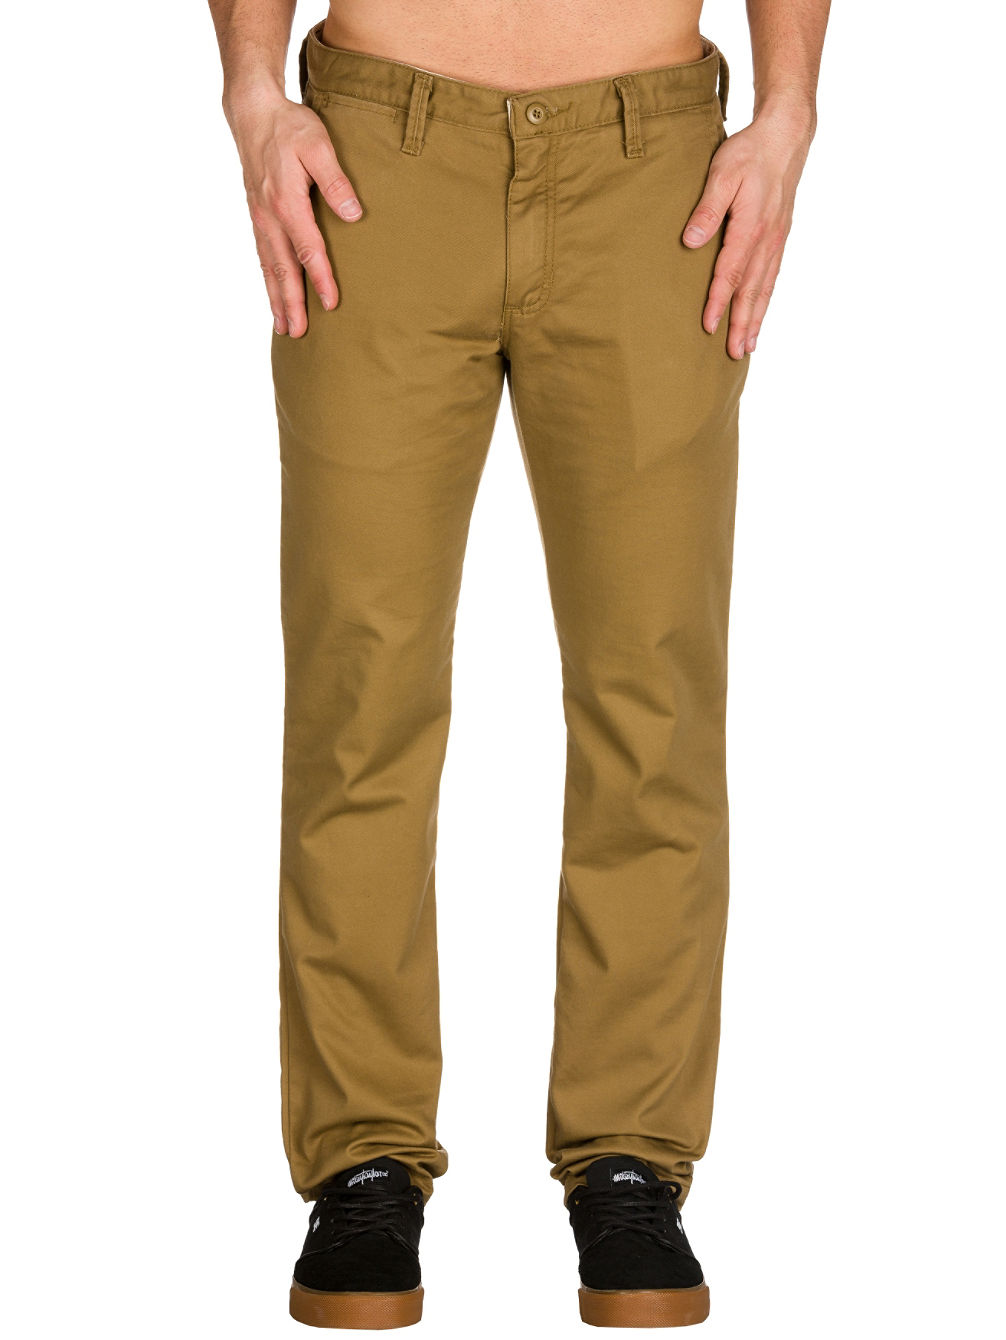 Authentic Chino Stretch Pants